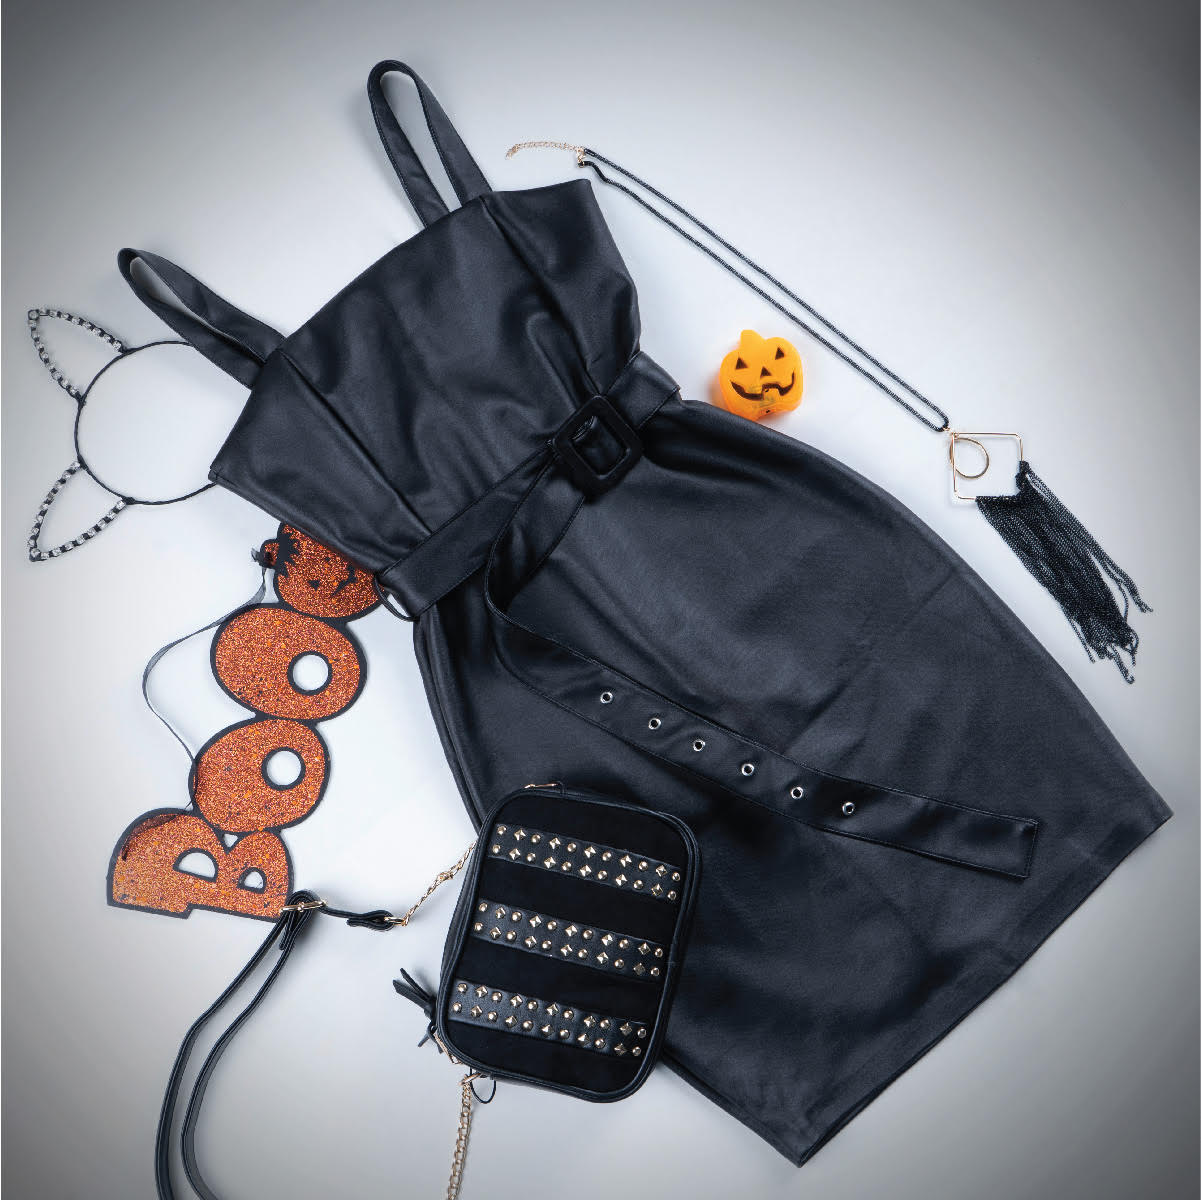 'Trick O'Chic' outfit